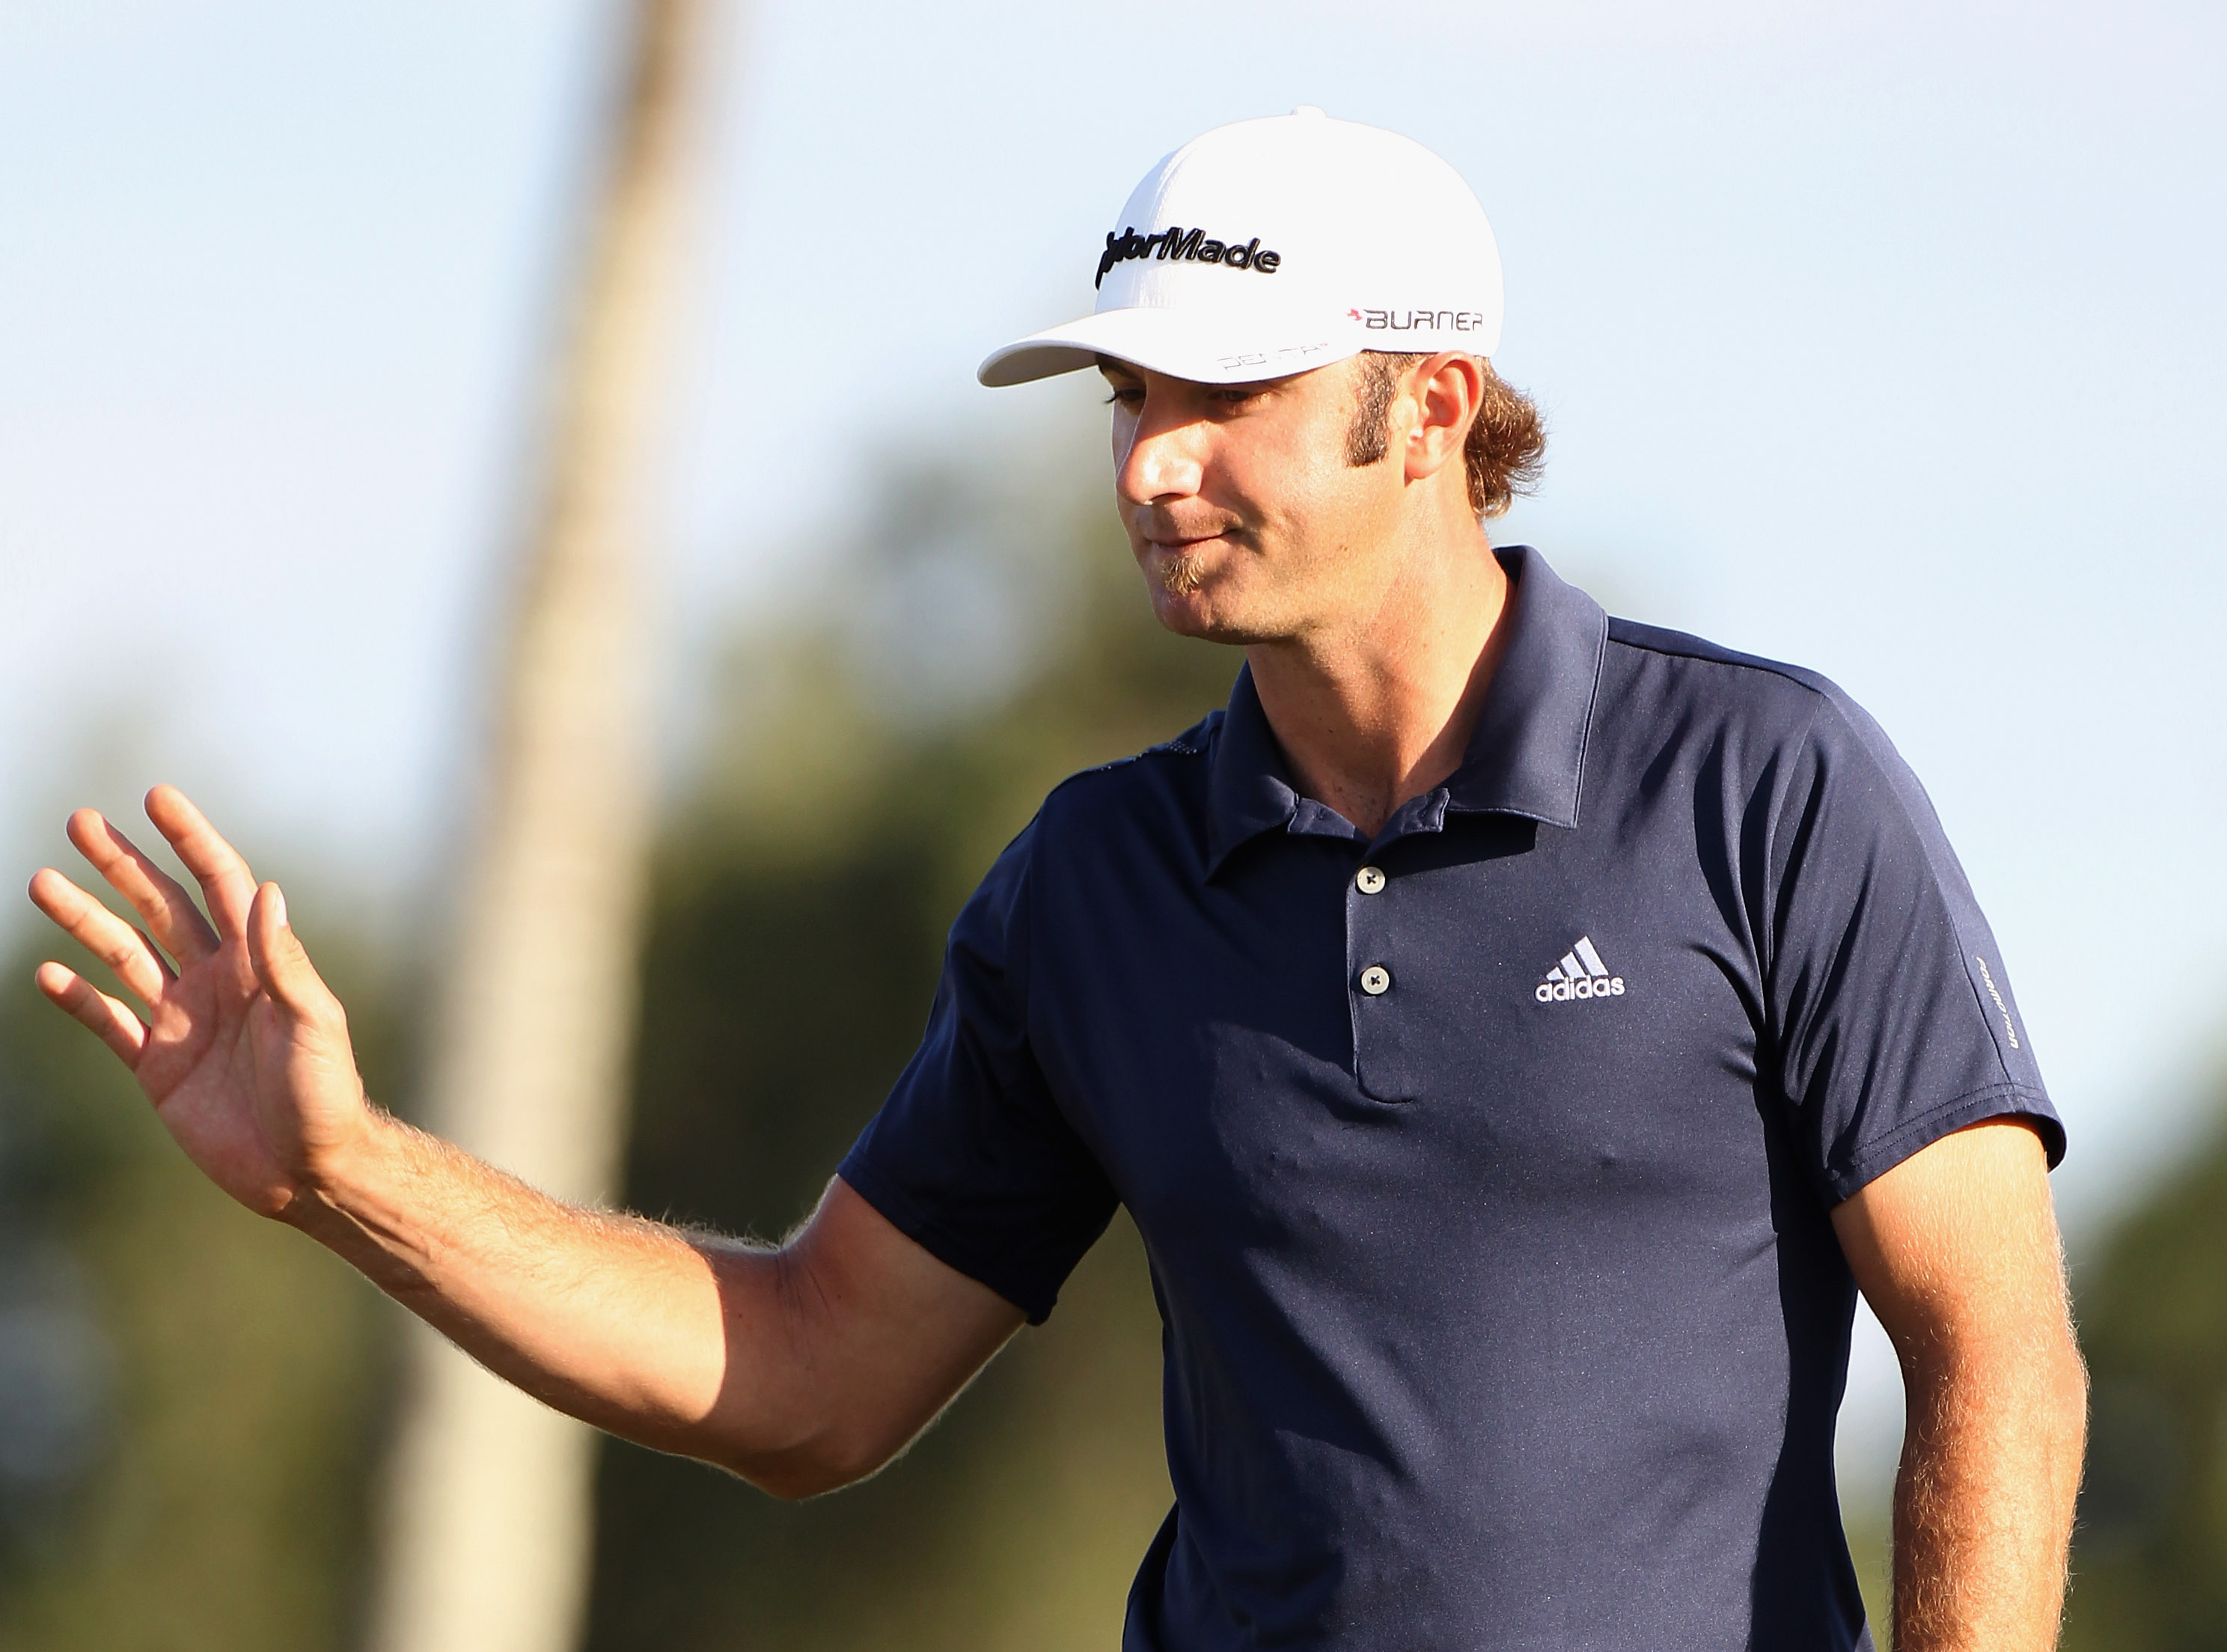 DORAL, FL - MARCH 12:  Dustin Johnson celebrates a birdie putt on the 17th hole during the third round of the 2011 WGC- Cadillac Championship at the TPC Blue Monster at the Doral Golf Resort and Spa on March 12, 2011 in Doral, Florida.  (Photo by Sam Gree